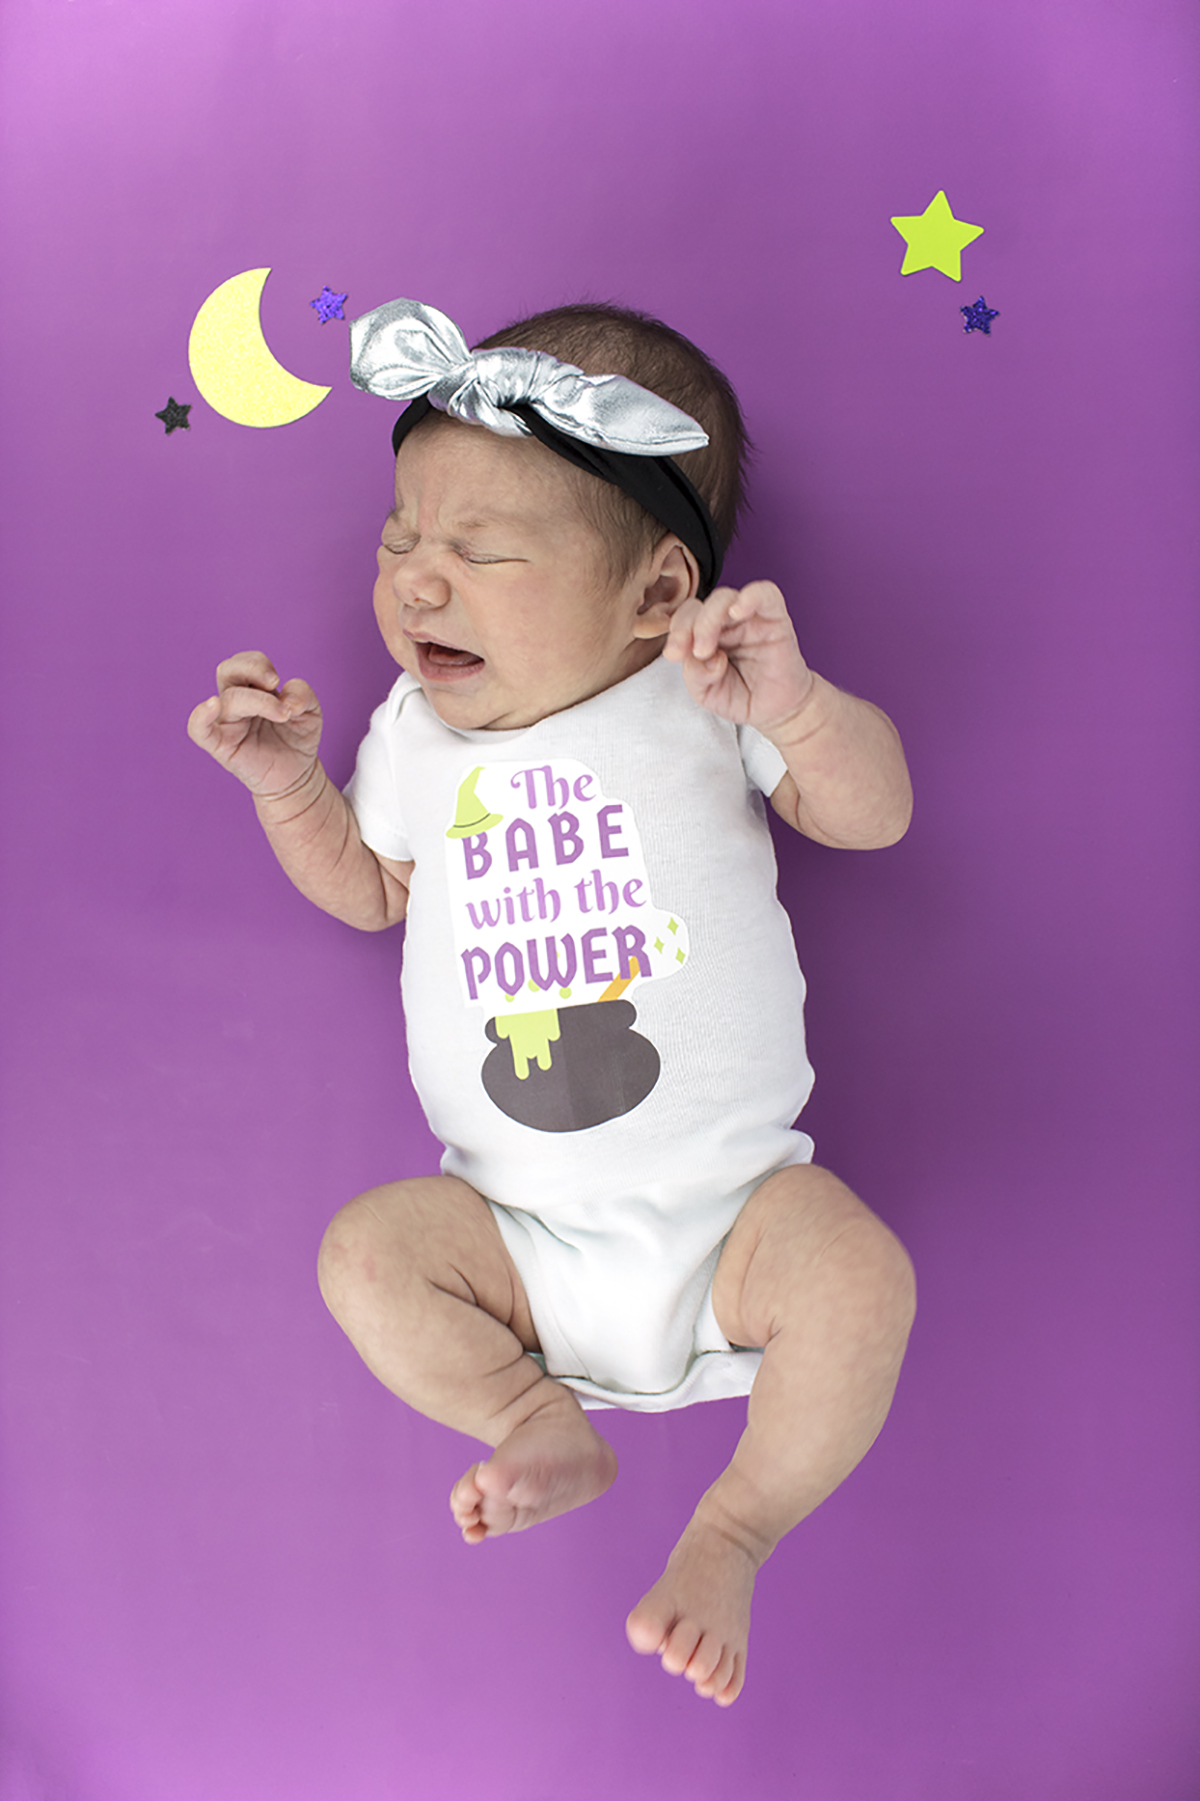 If you're a fellow newborn momma like me, or even just have kids, you may be looking for something super easy to get into the spooky season like I am. Lucky for you, these onesies are SO easy to make. Click for the DIY & free printable!